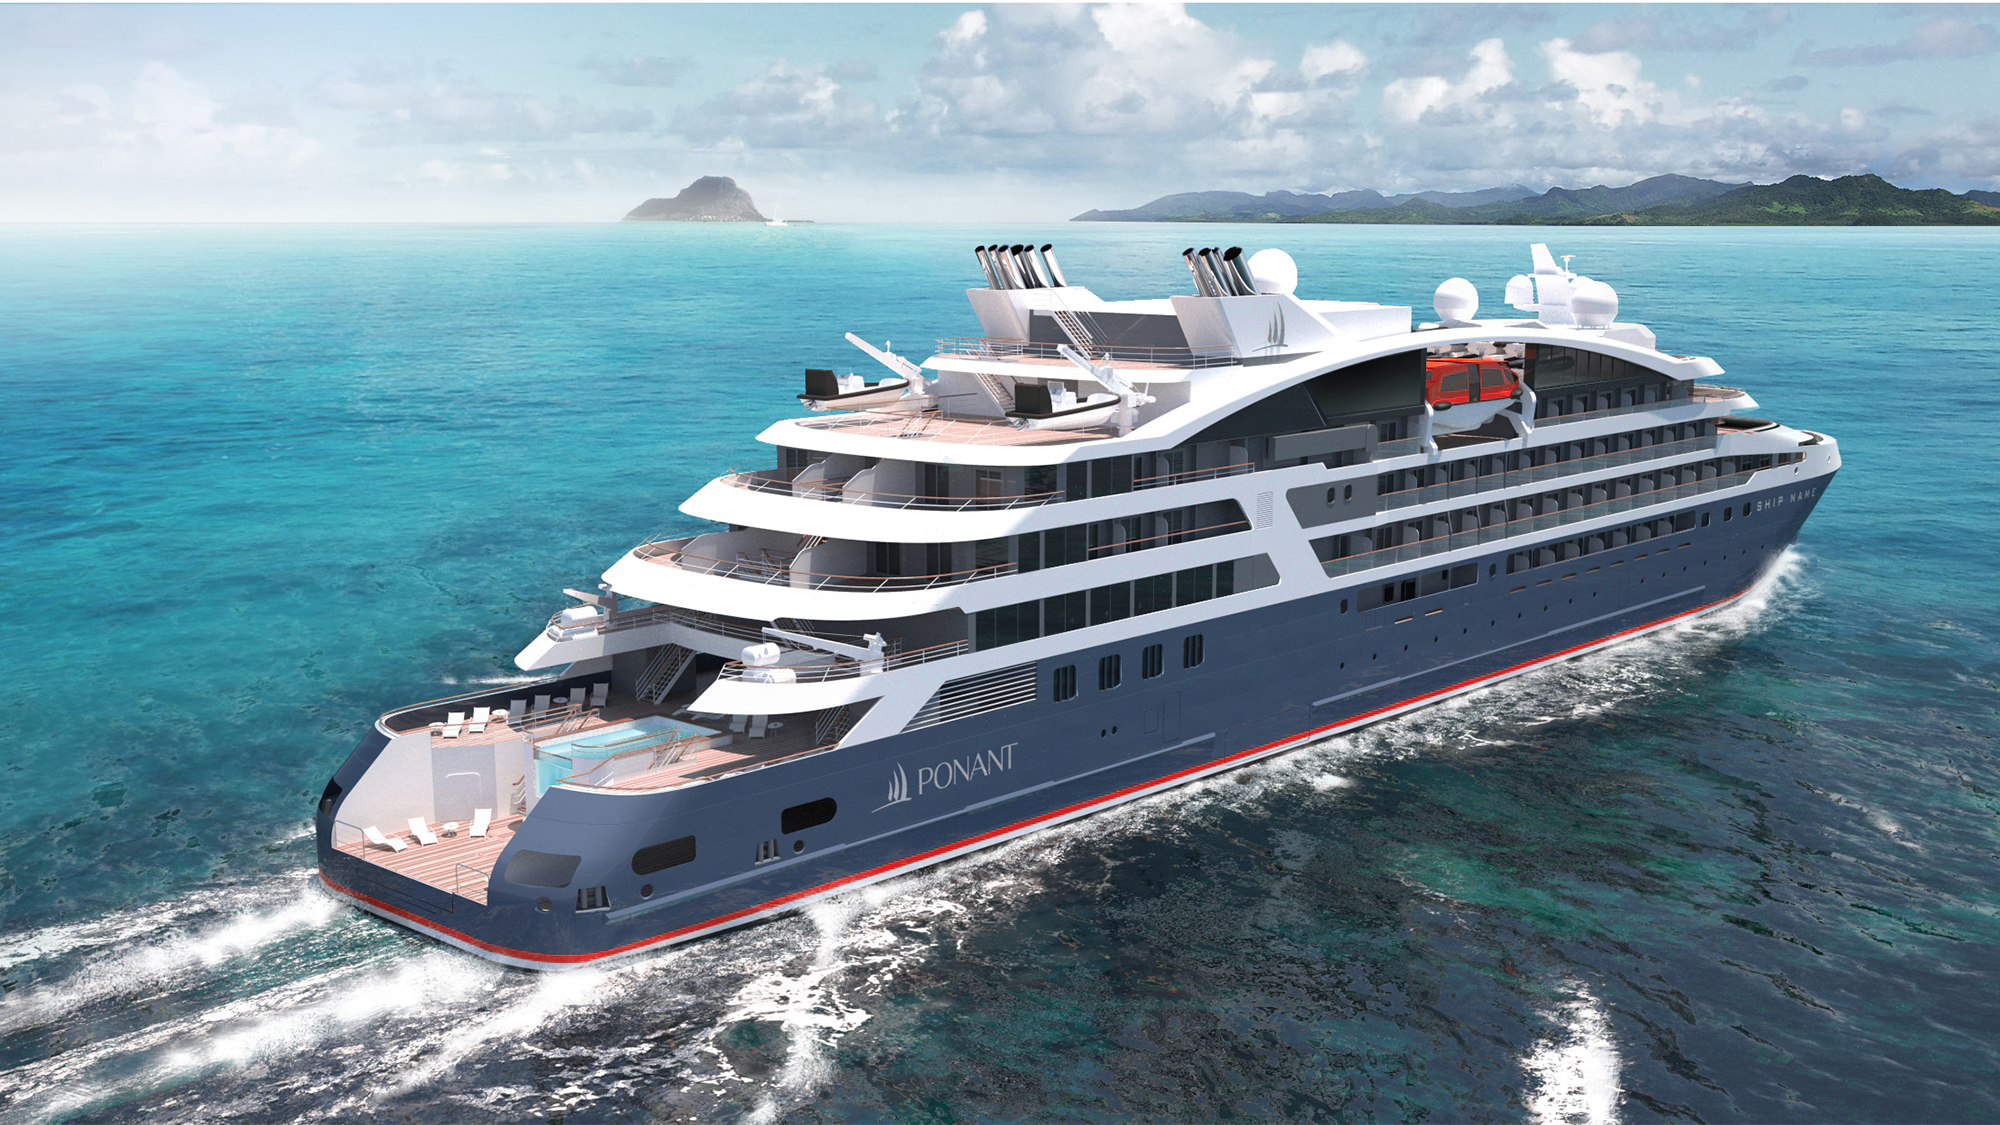 Ponant Naming Expedition Ships After French Explorers